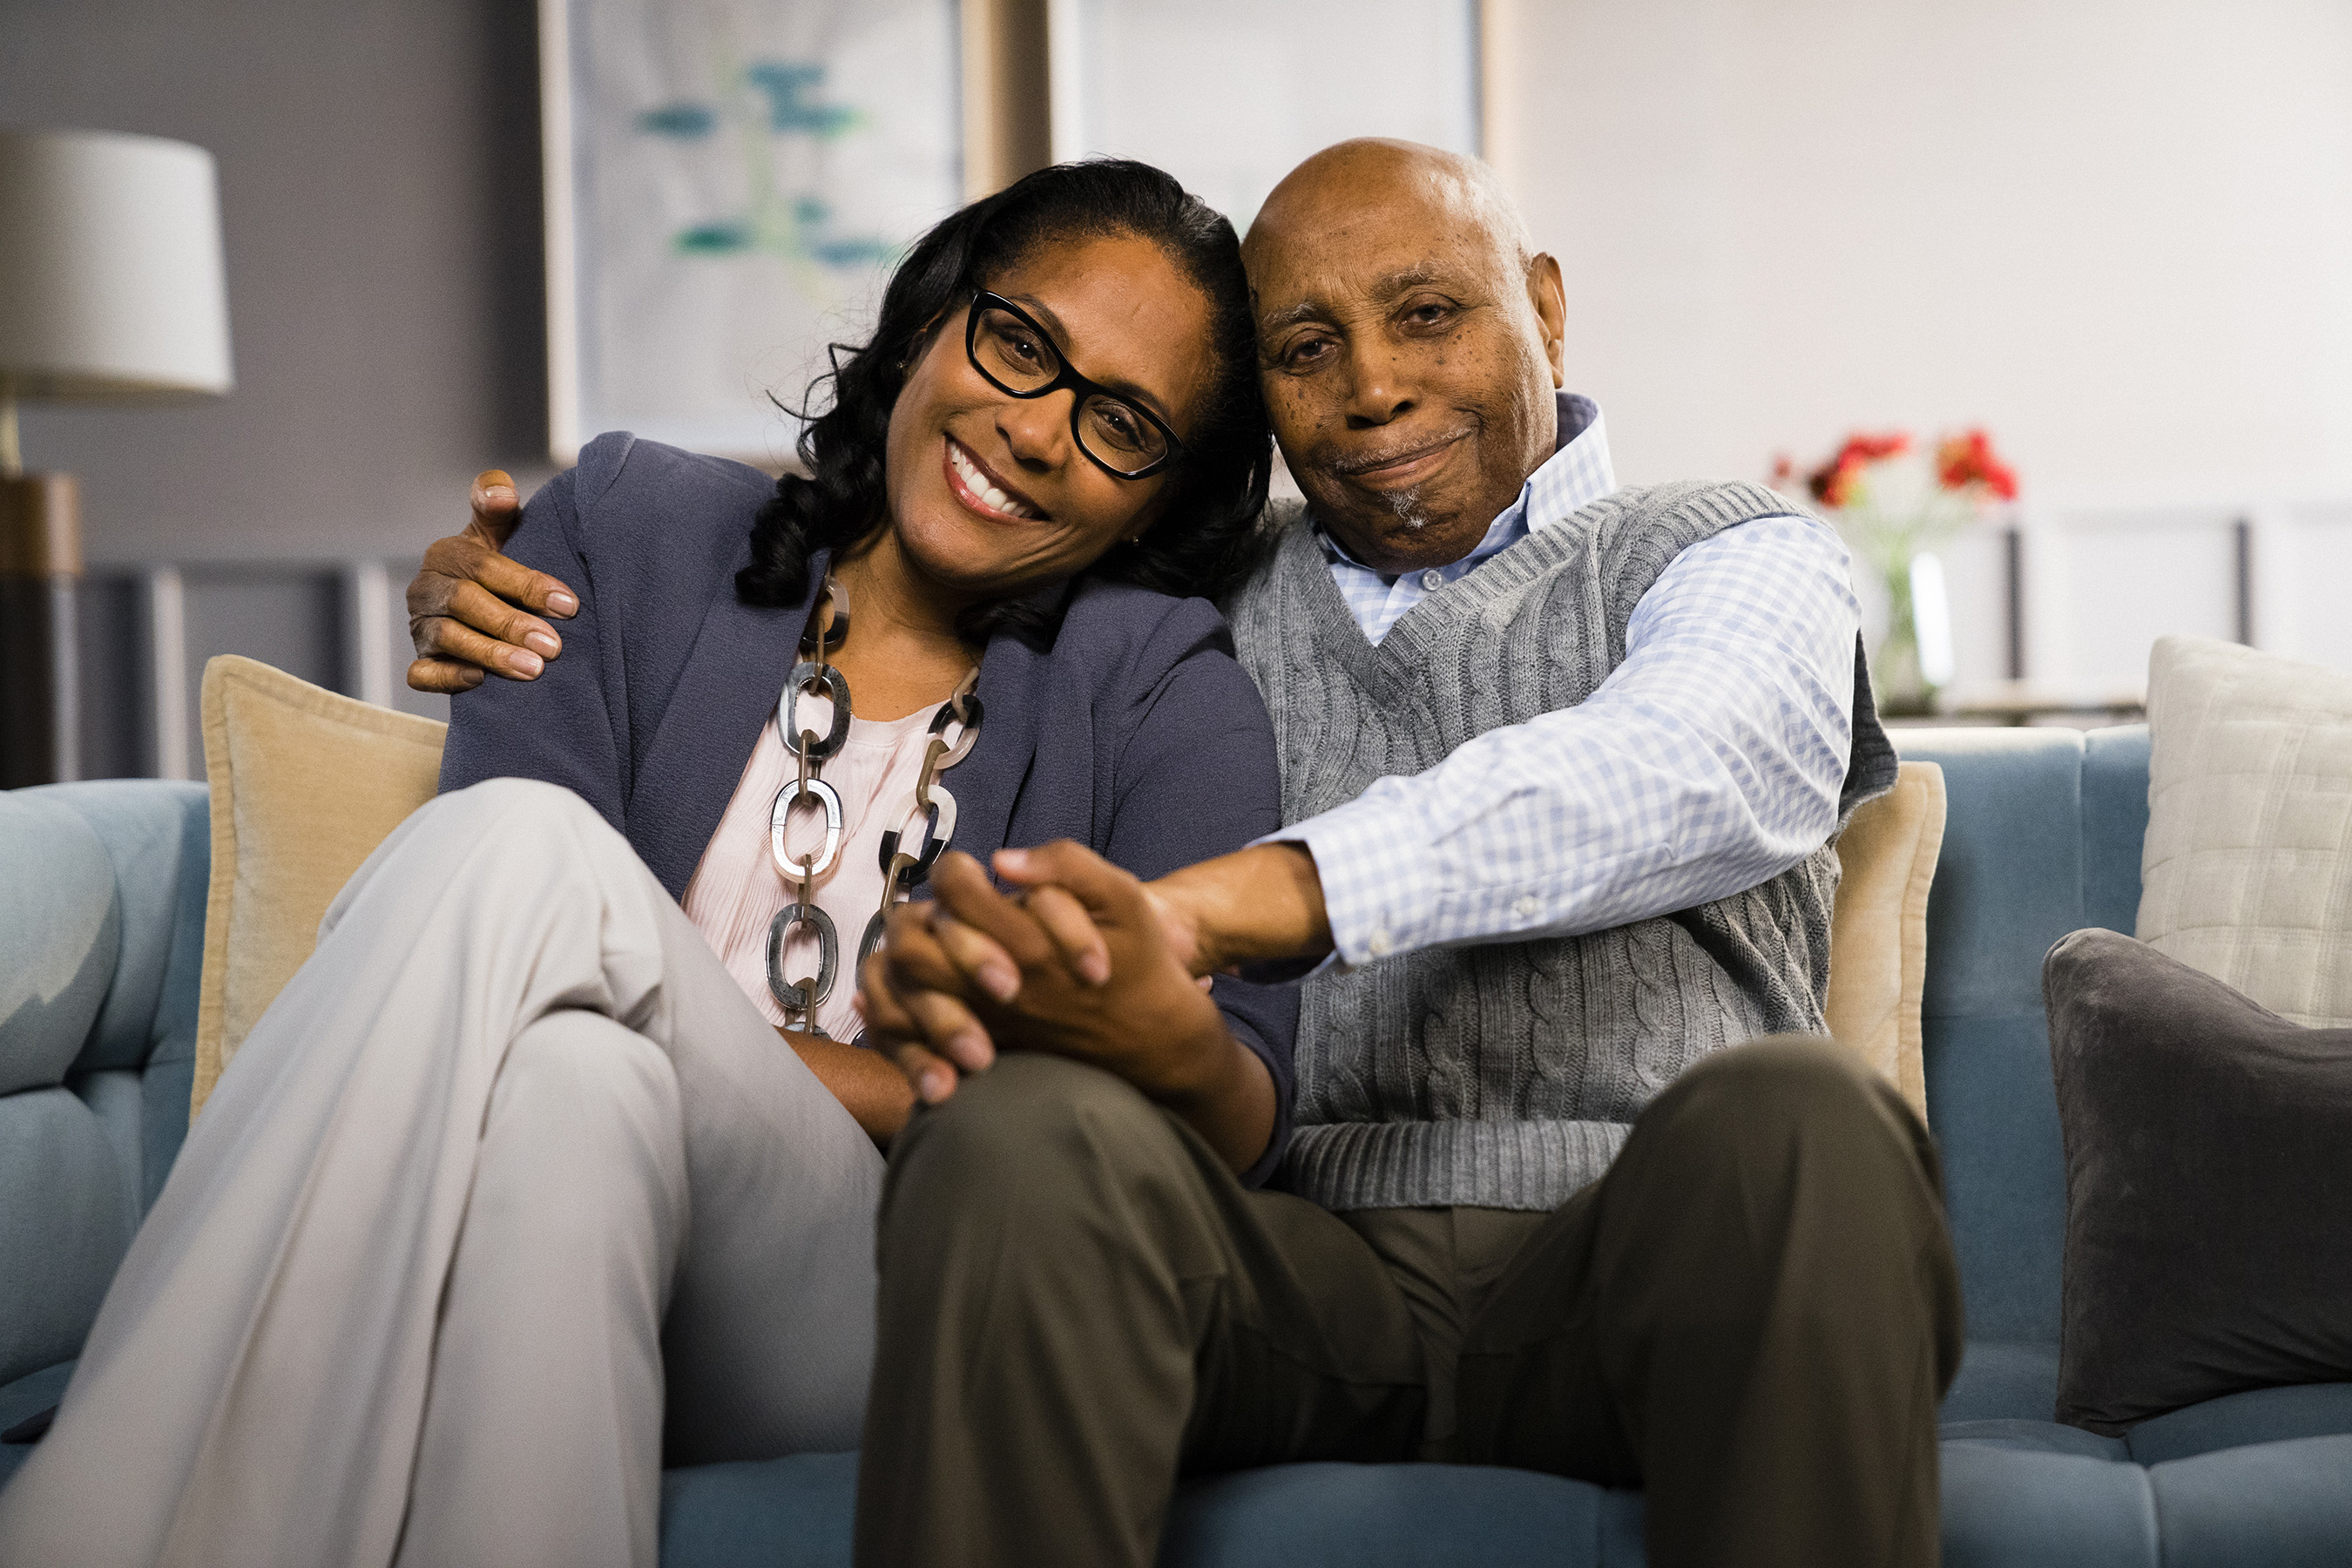 After Dr. Watson's dad, Edward, who is living with type 2 diabetes, had a heart attack, she decided to pursue cardiology to help people with diabetes understand their risk for cardiovascular disease.